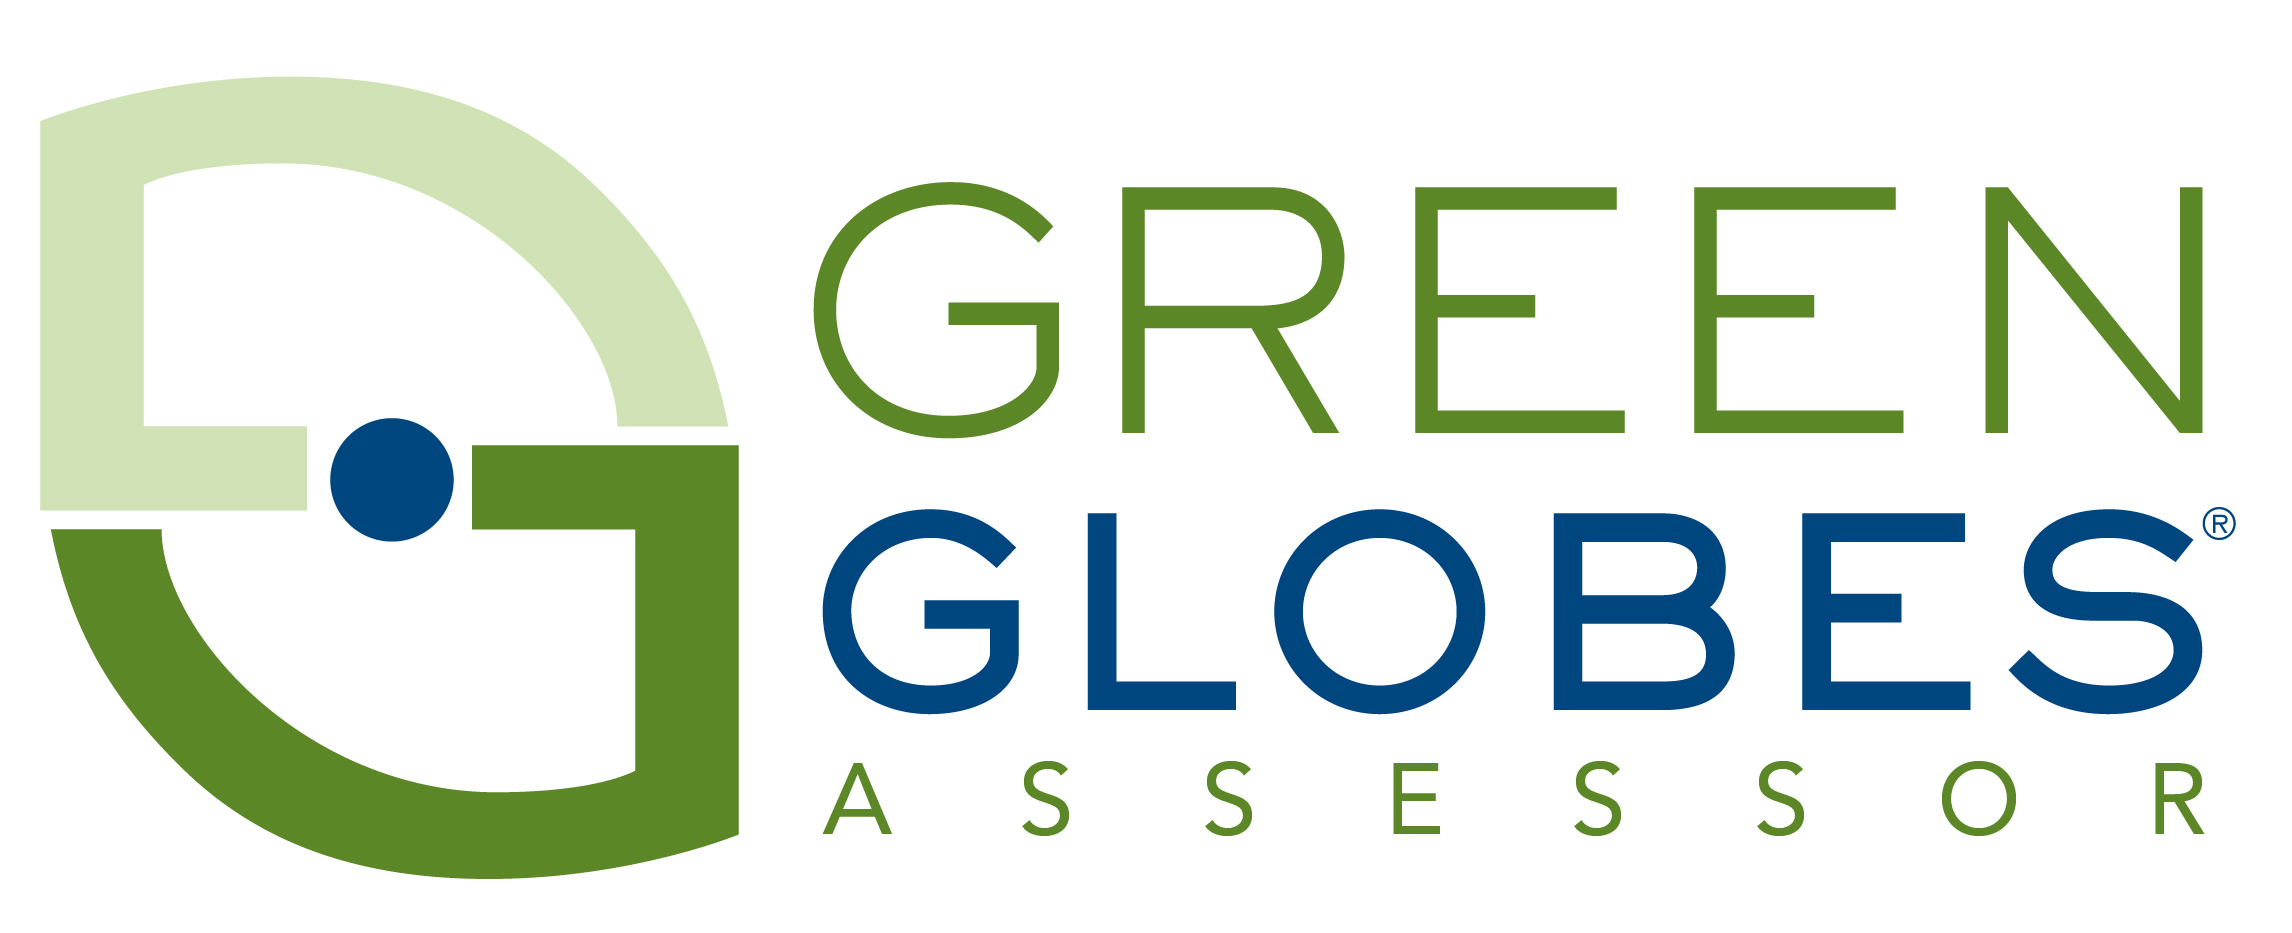 Green building initiative professional certification green globes assessor gga certified ggas are technical experts in the areas of sustainable design construction energy and facility management xflitez Gallery